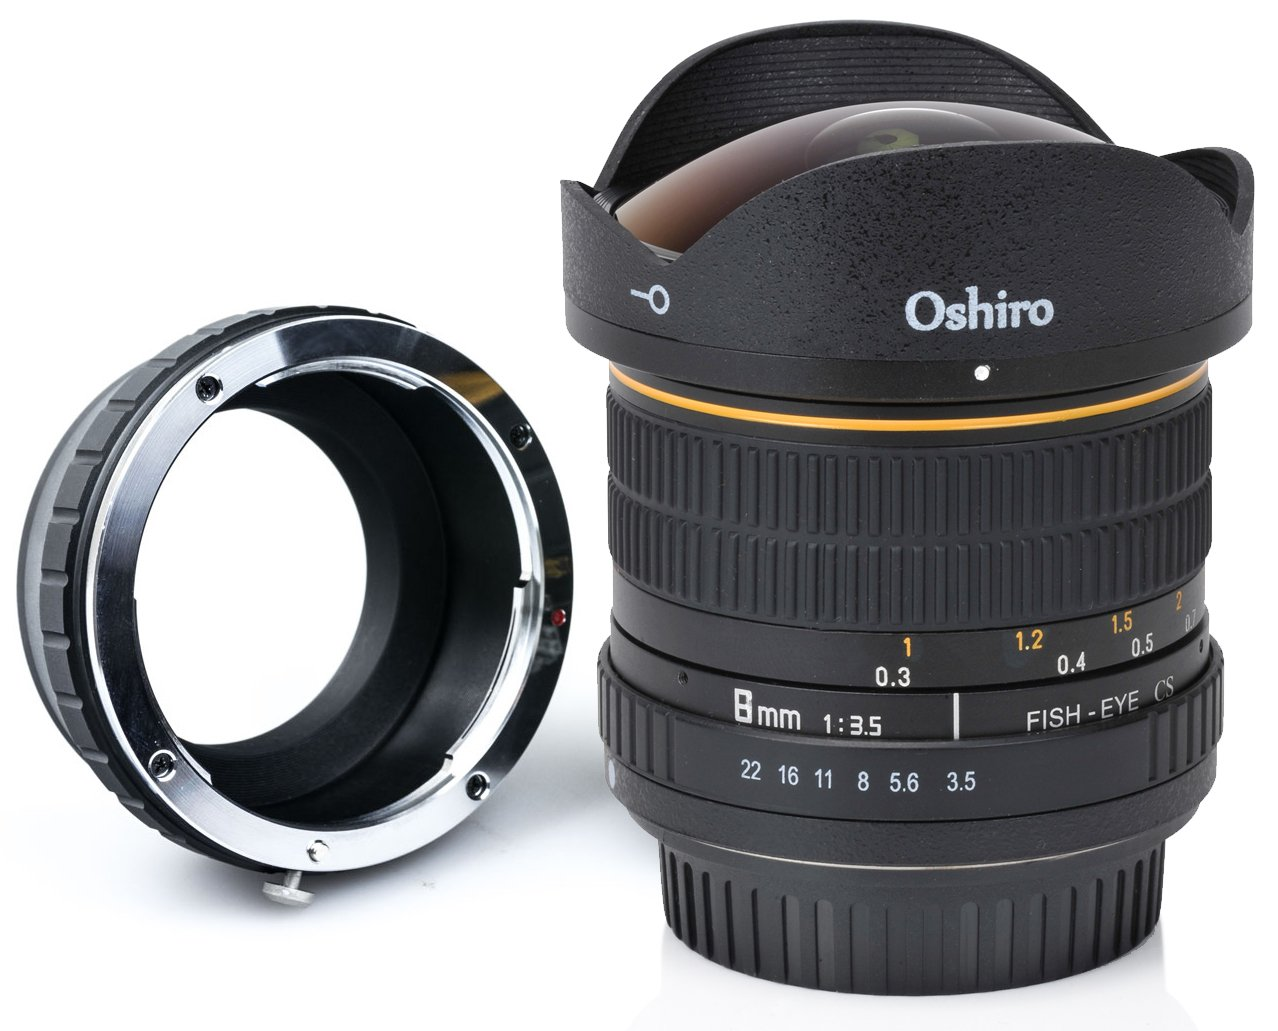 Oshiro 8mm f/3.5 LD UNC AL Wide Angle Fisheye Lens for Sony a7r II, a7s, a7, a6300, a6000, a5100, a5000, a3000, NEX-7, NEX-6, NEX-5T, NEX-5N, NEX-5R, 3N and other E-Mount Digital Mirrorless Cameras SH8MMLNEX